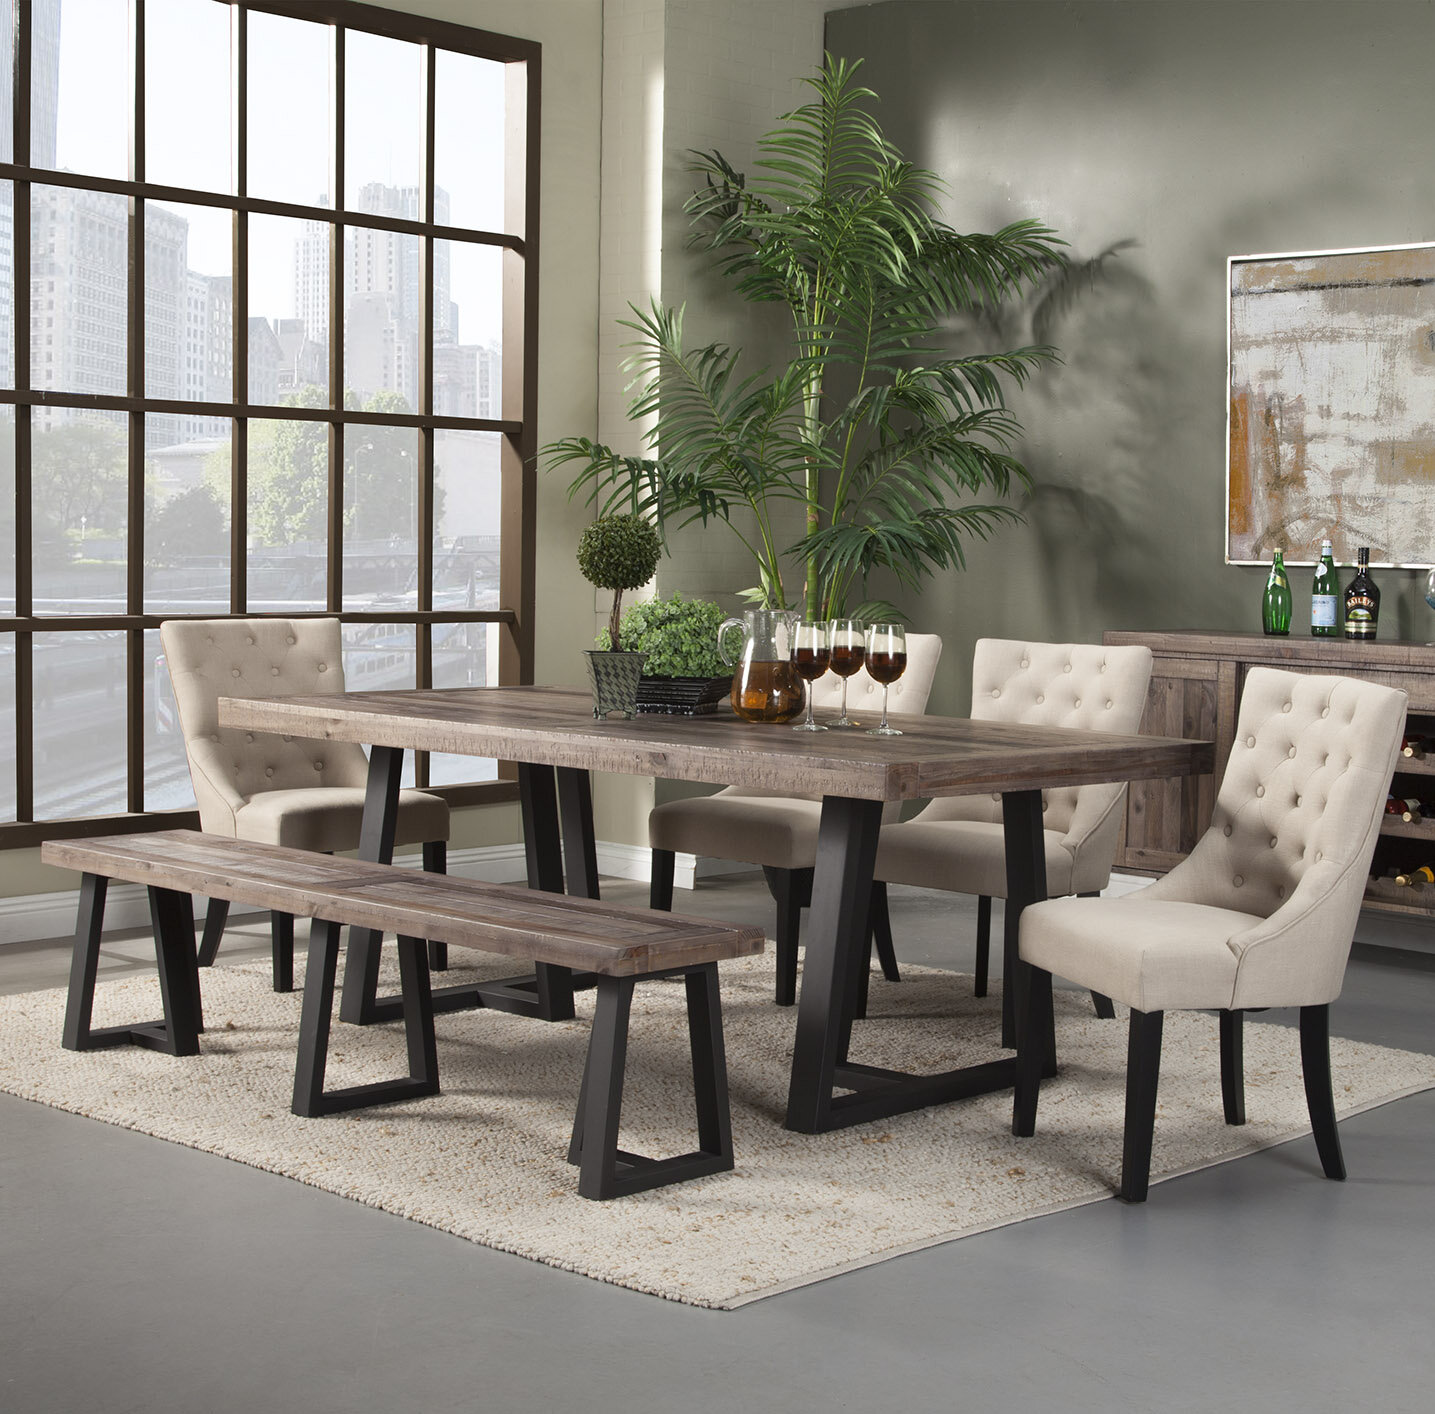 separation shoes 3f5dd fdeea Dining Table With Corner Bench | Wayfair